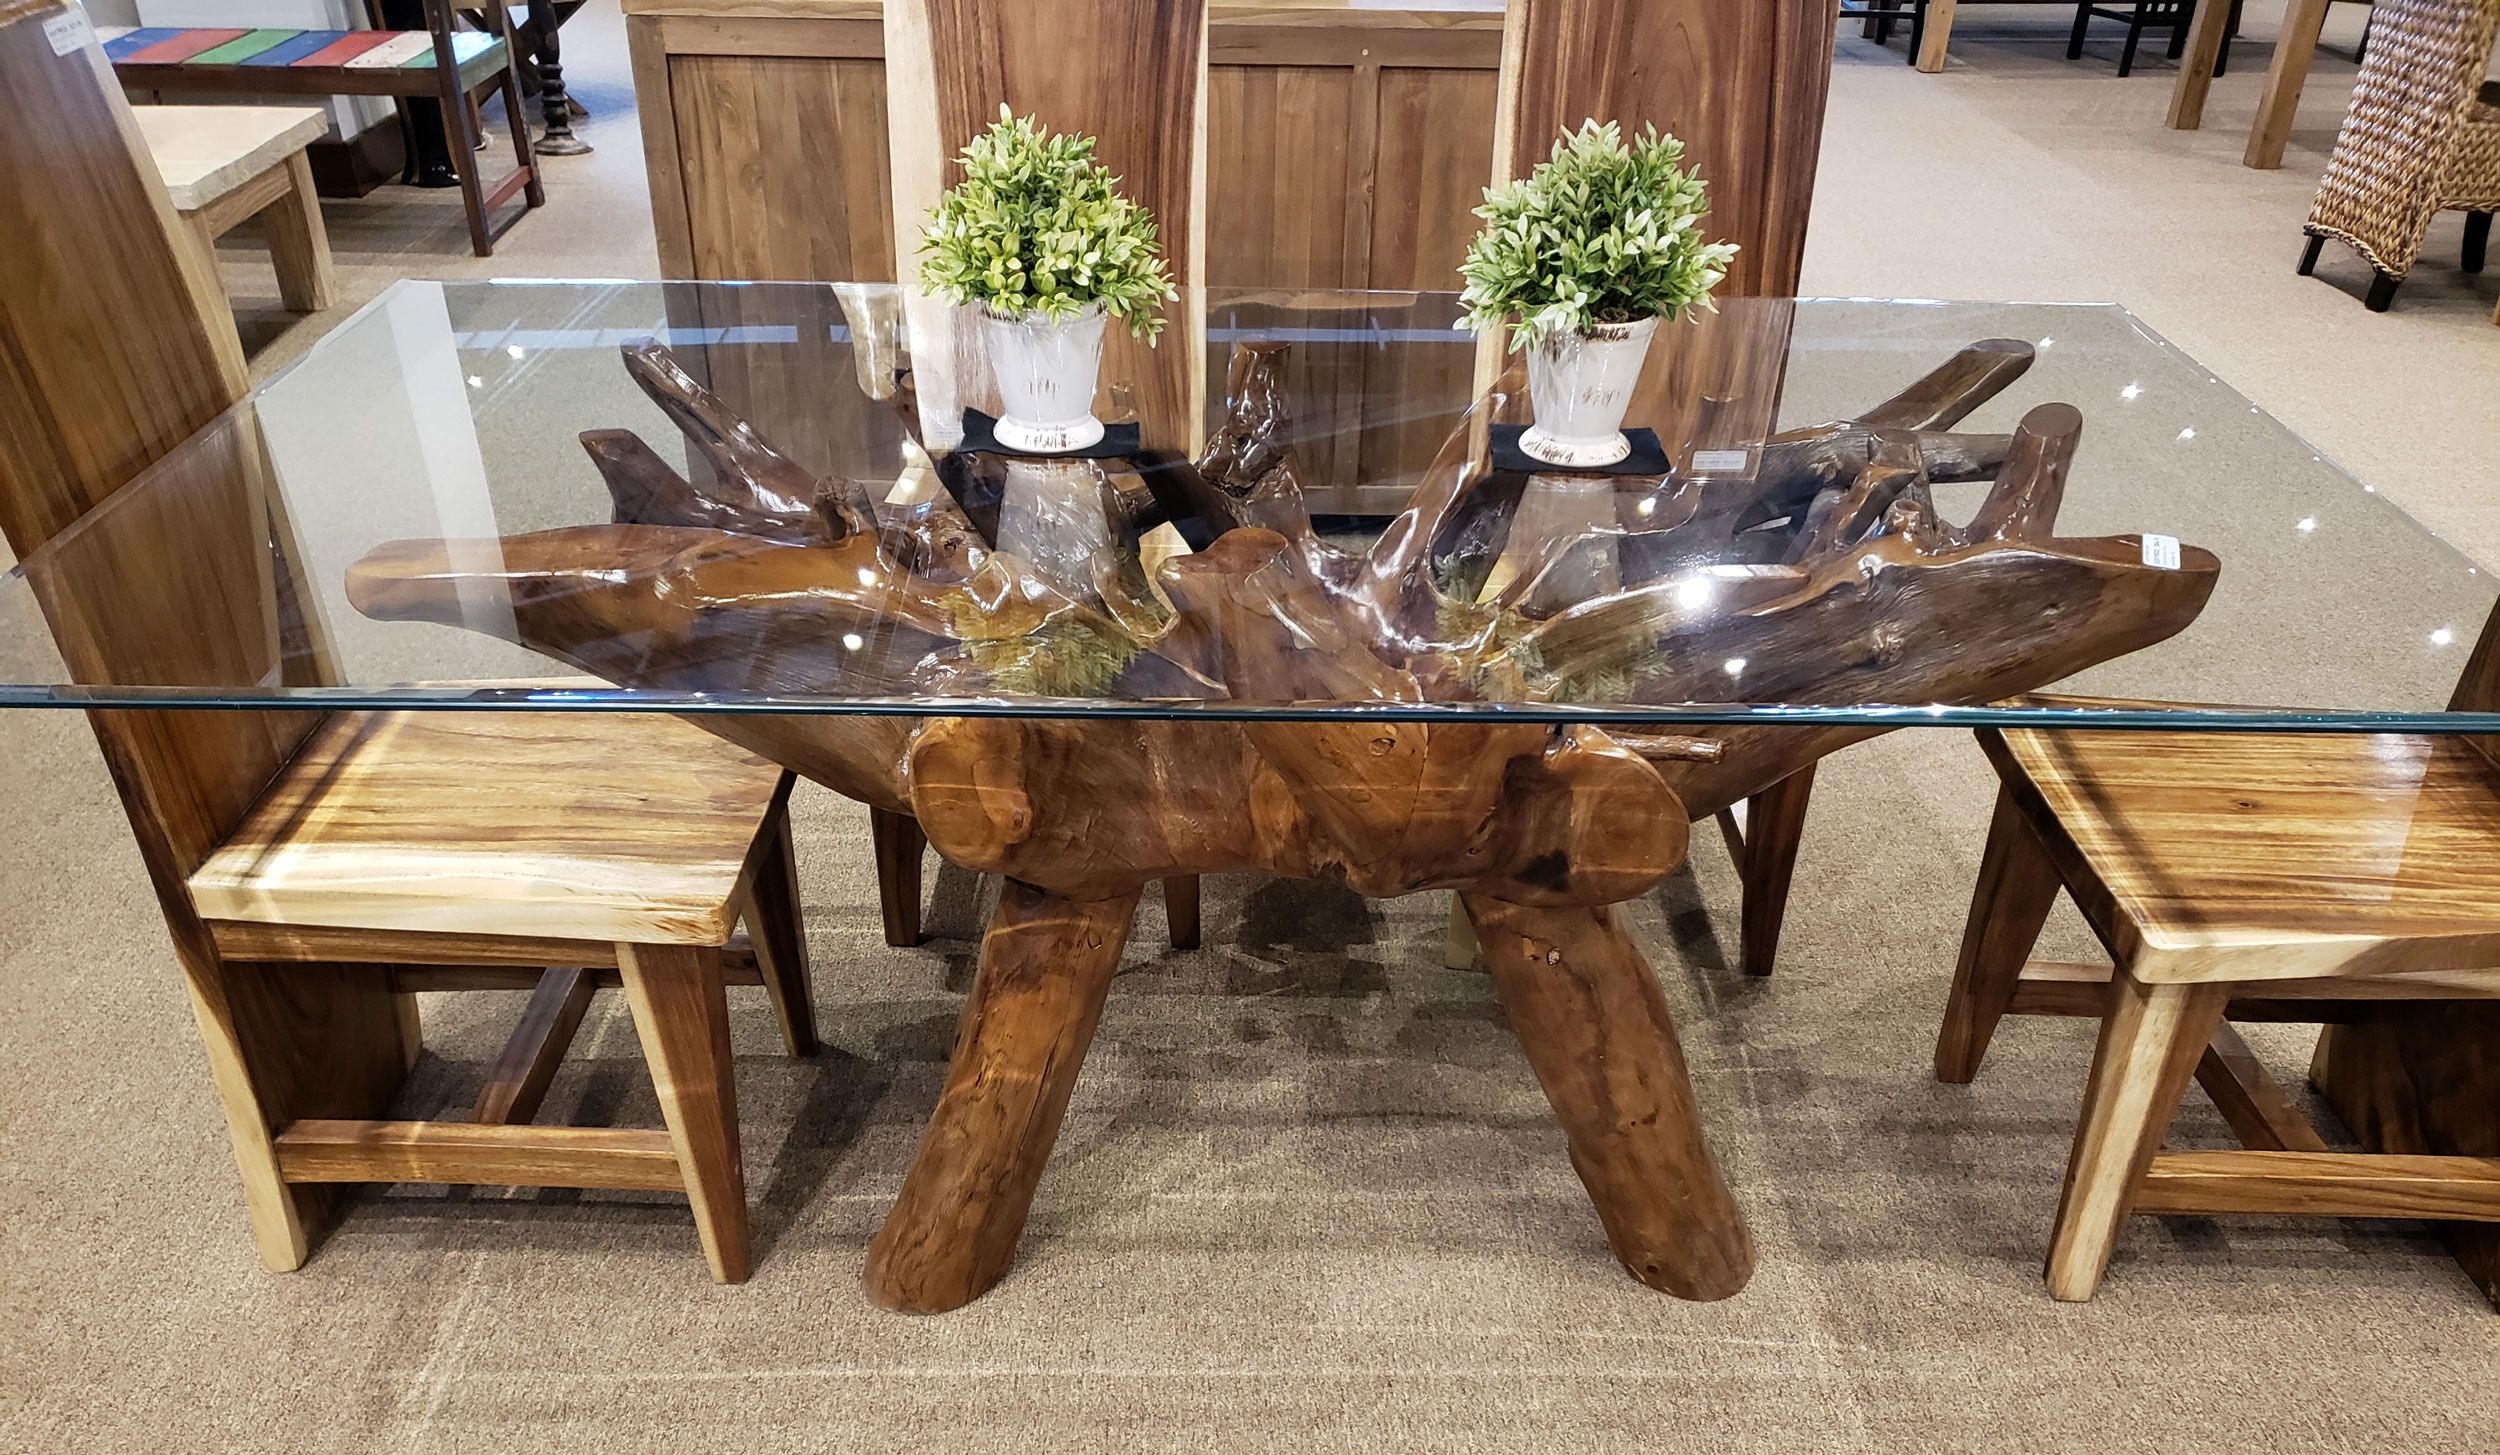 Teak Wood Root Dining Table Including A 71 X 40 Inch Glass Top By